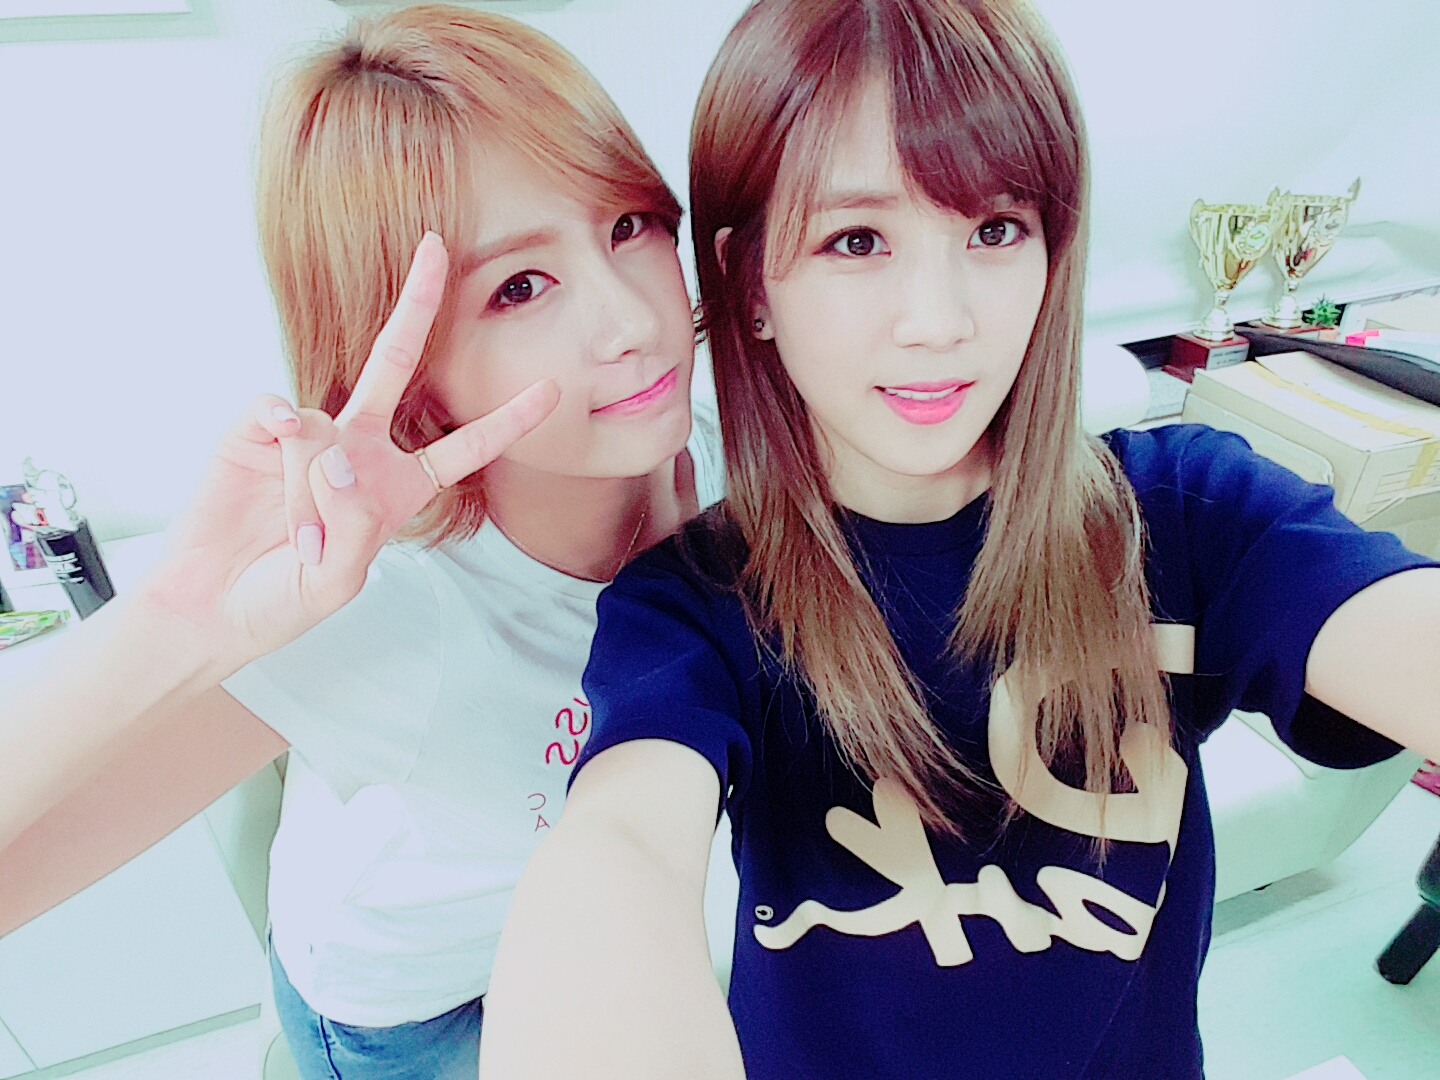 Apink 고민상담소! (Consult with Apink!) #1